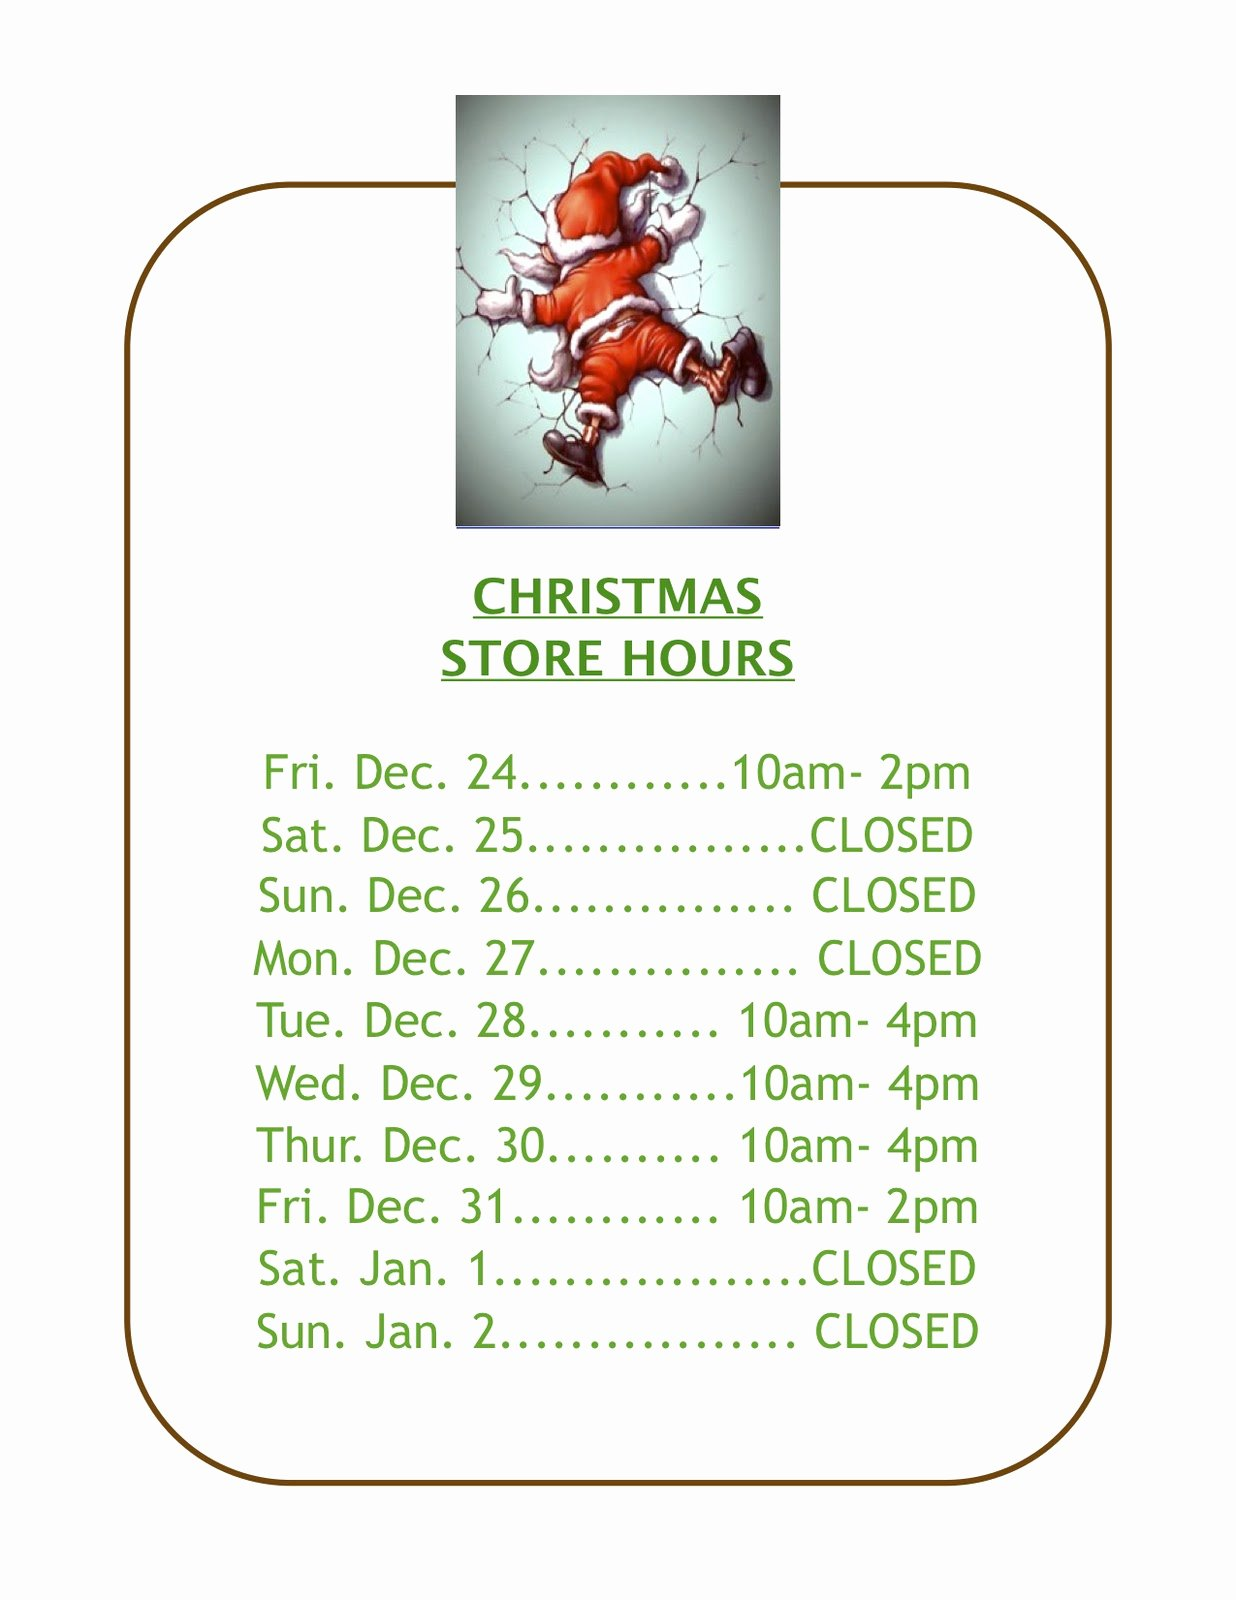 Holiday Hours Template Word Beautiful Christmas Store Hours Template – Festival Collections